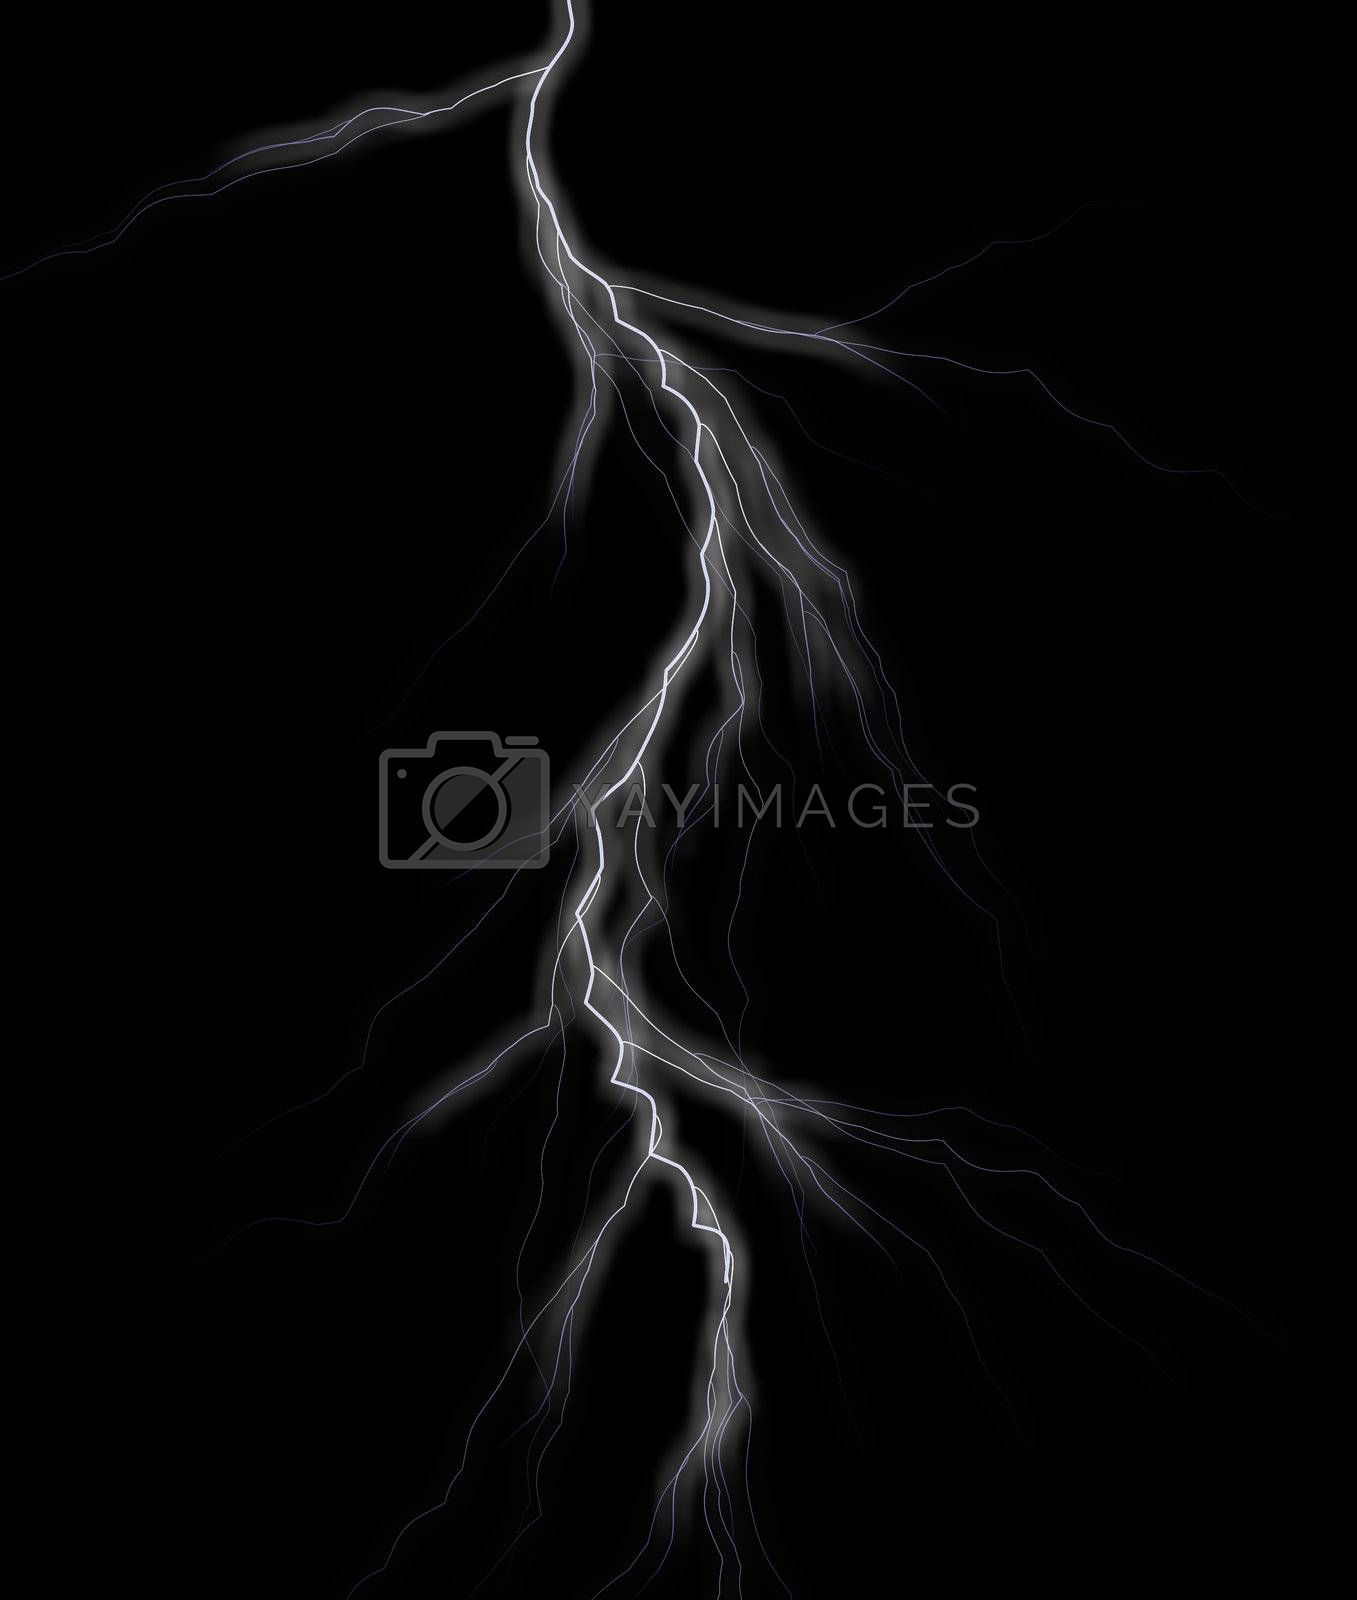 Royalty free image of lightning by drizzd